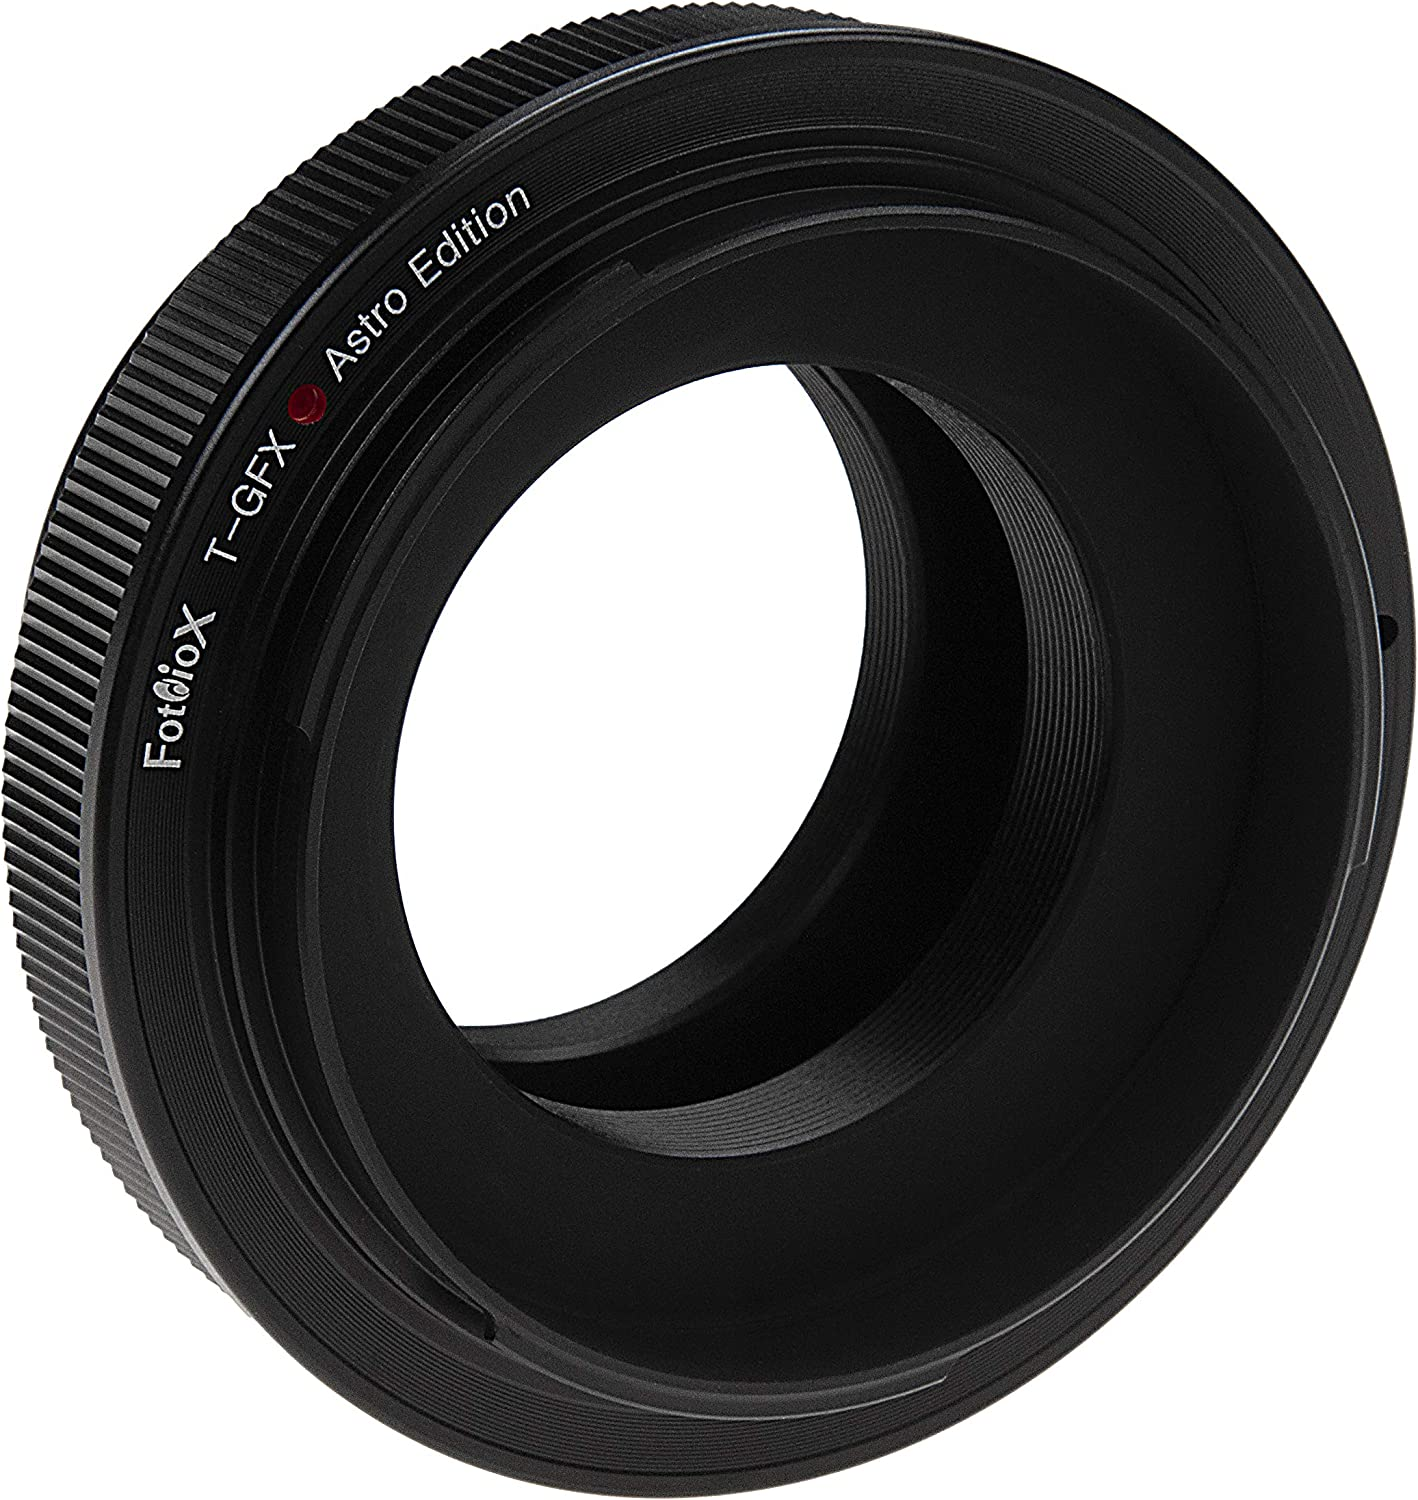 Fotodiox Lens Adapter Astro Edition Compatible with T-Mount T//T-2 Screw Mount Telescopes to Fujifilm Fuji G-Mount GFX Cameras for Astronomy